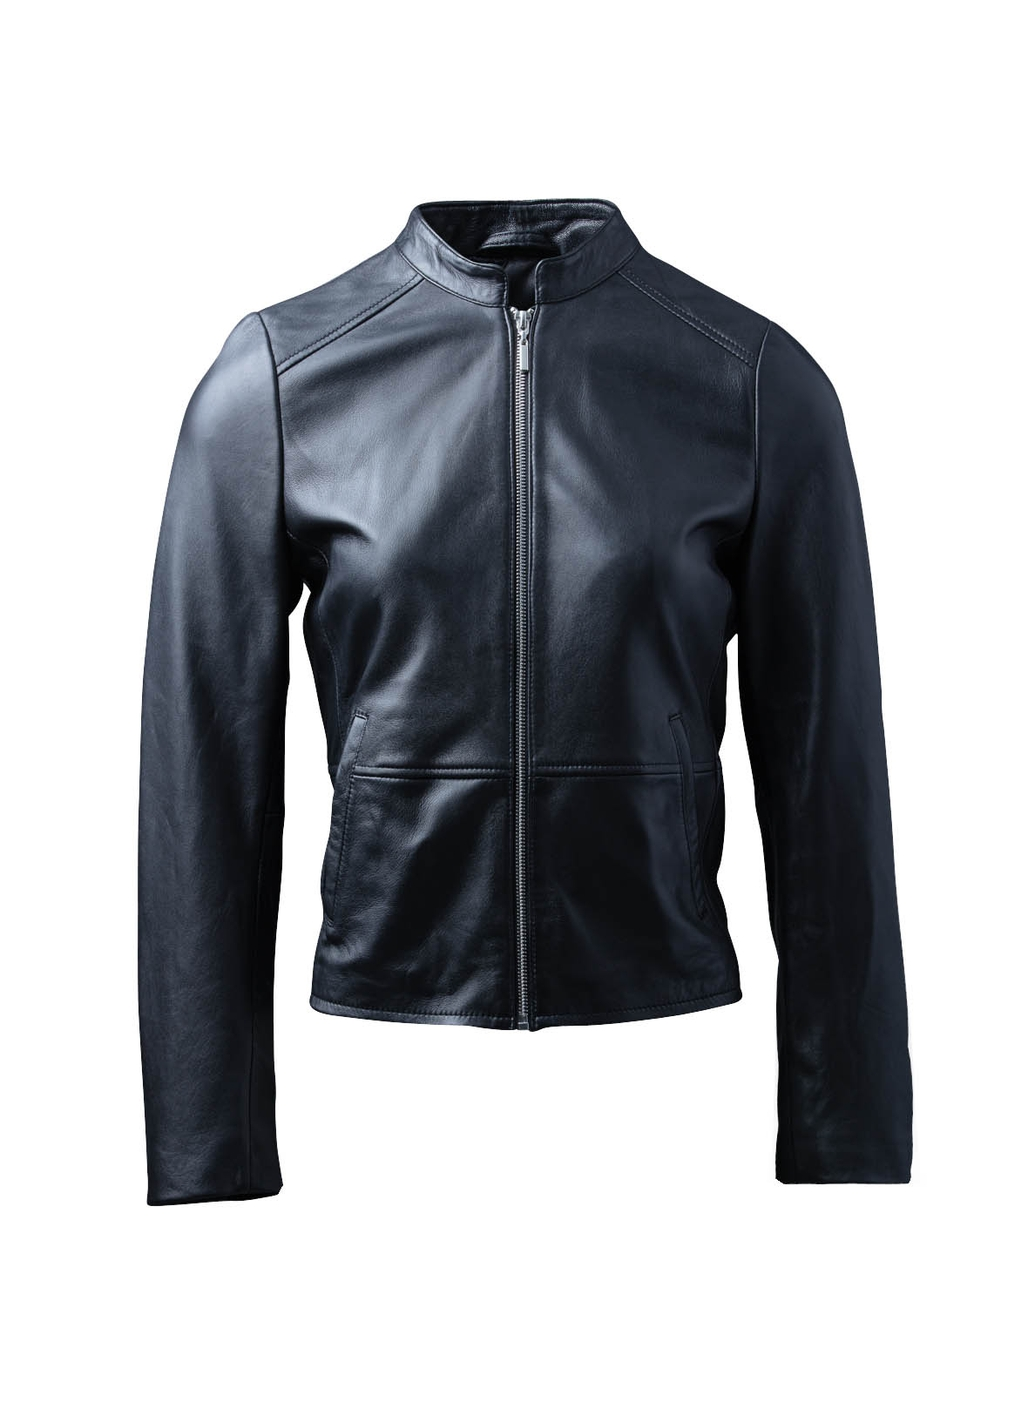 Lingmoor Leather Jacket in Black